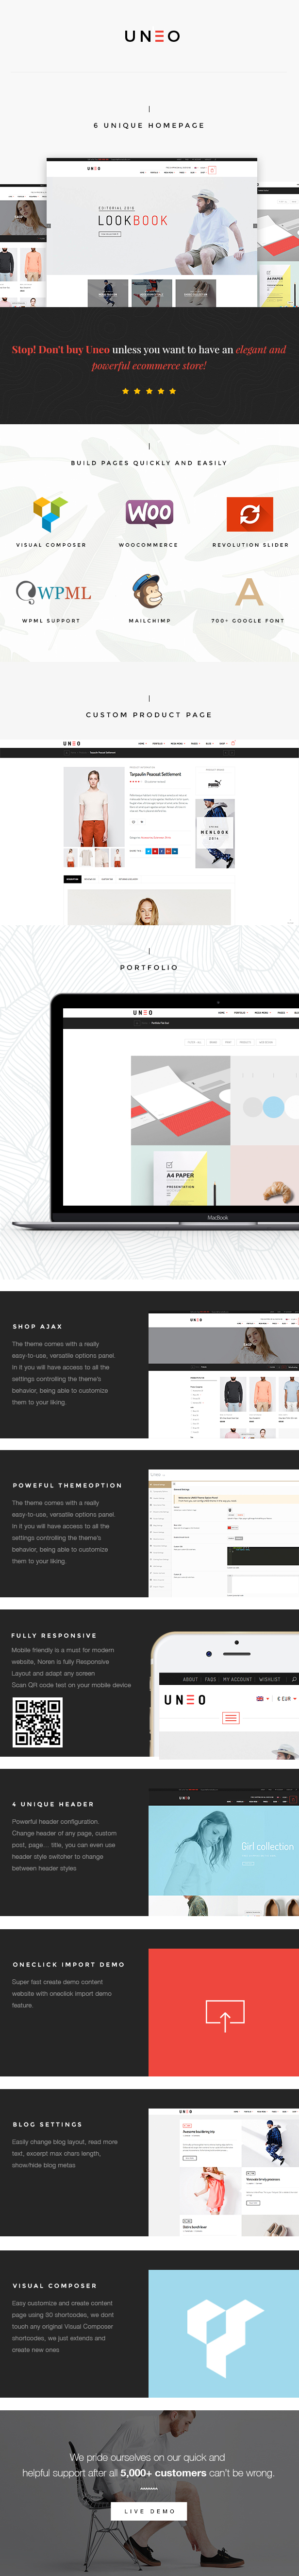 UNEO  Responsive WooCommerce Wordpress Theme - Download theme here : http://themeforest.net/item/uneo-responsive-woocommerce-theme/15623439?ref=pxcr